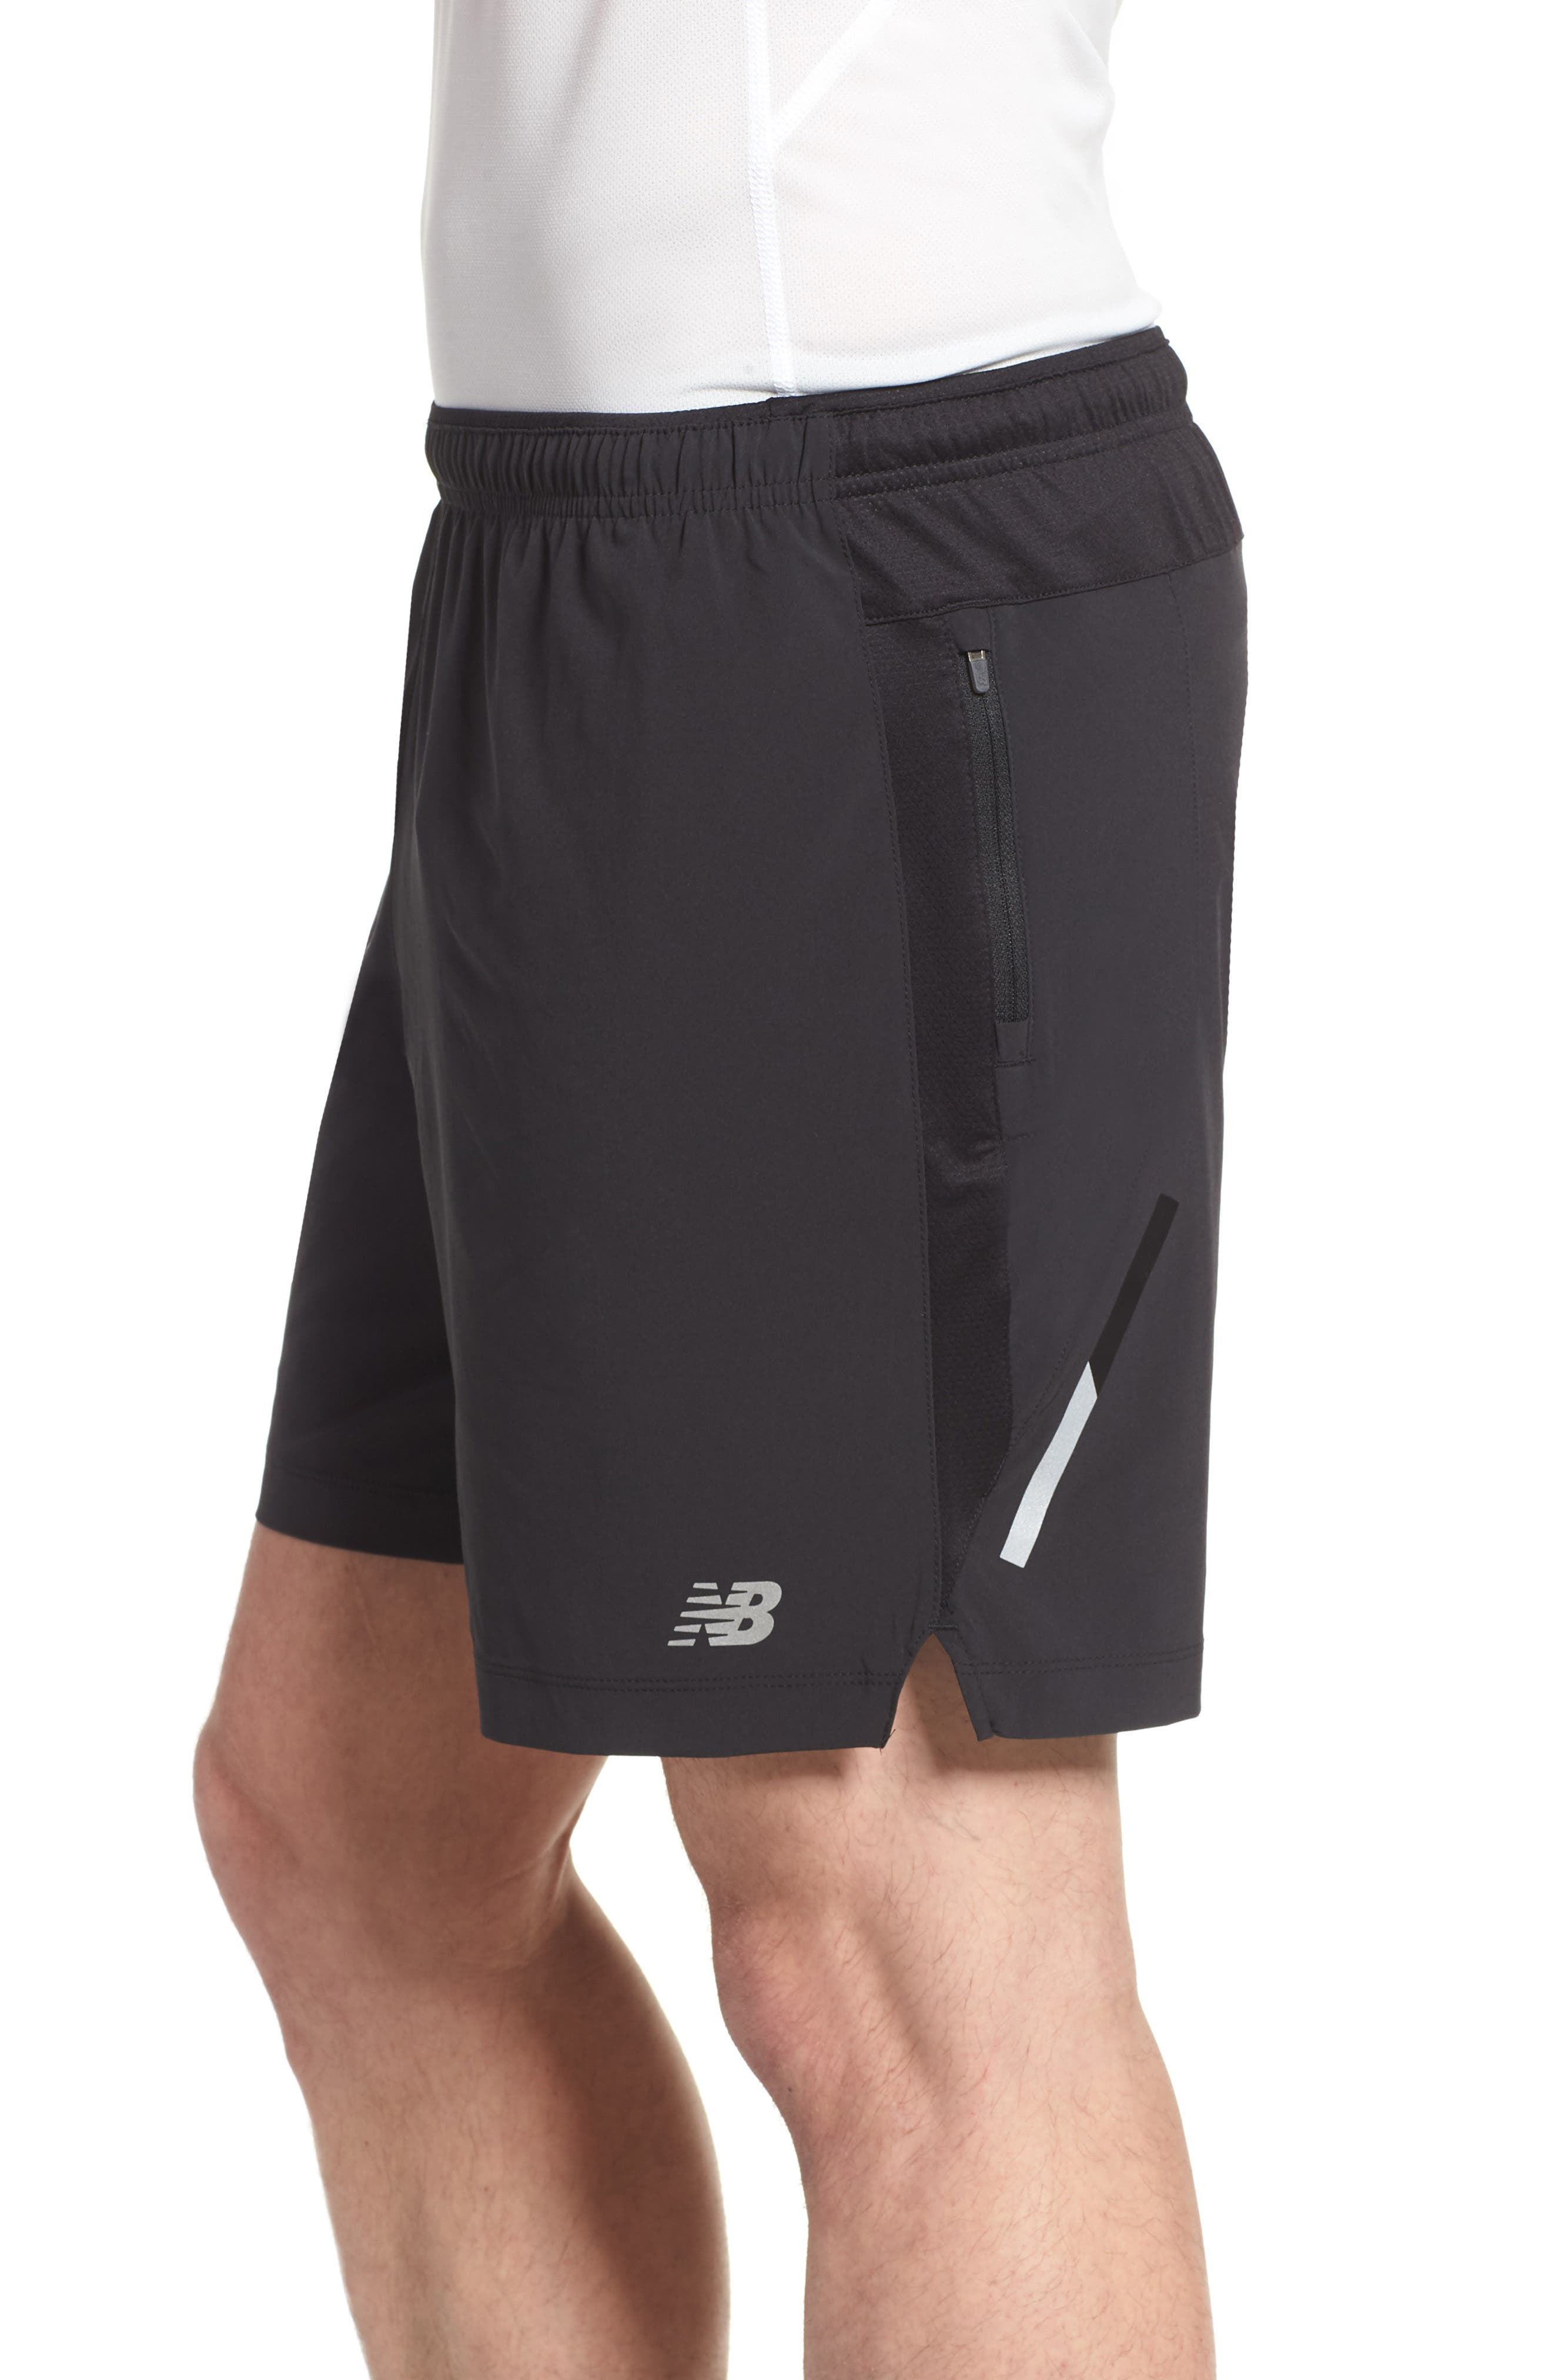 Impact Shorts,                             Alternate thumbnail 4, color,                             Black